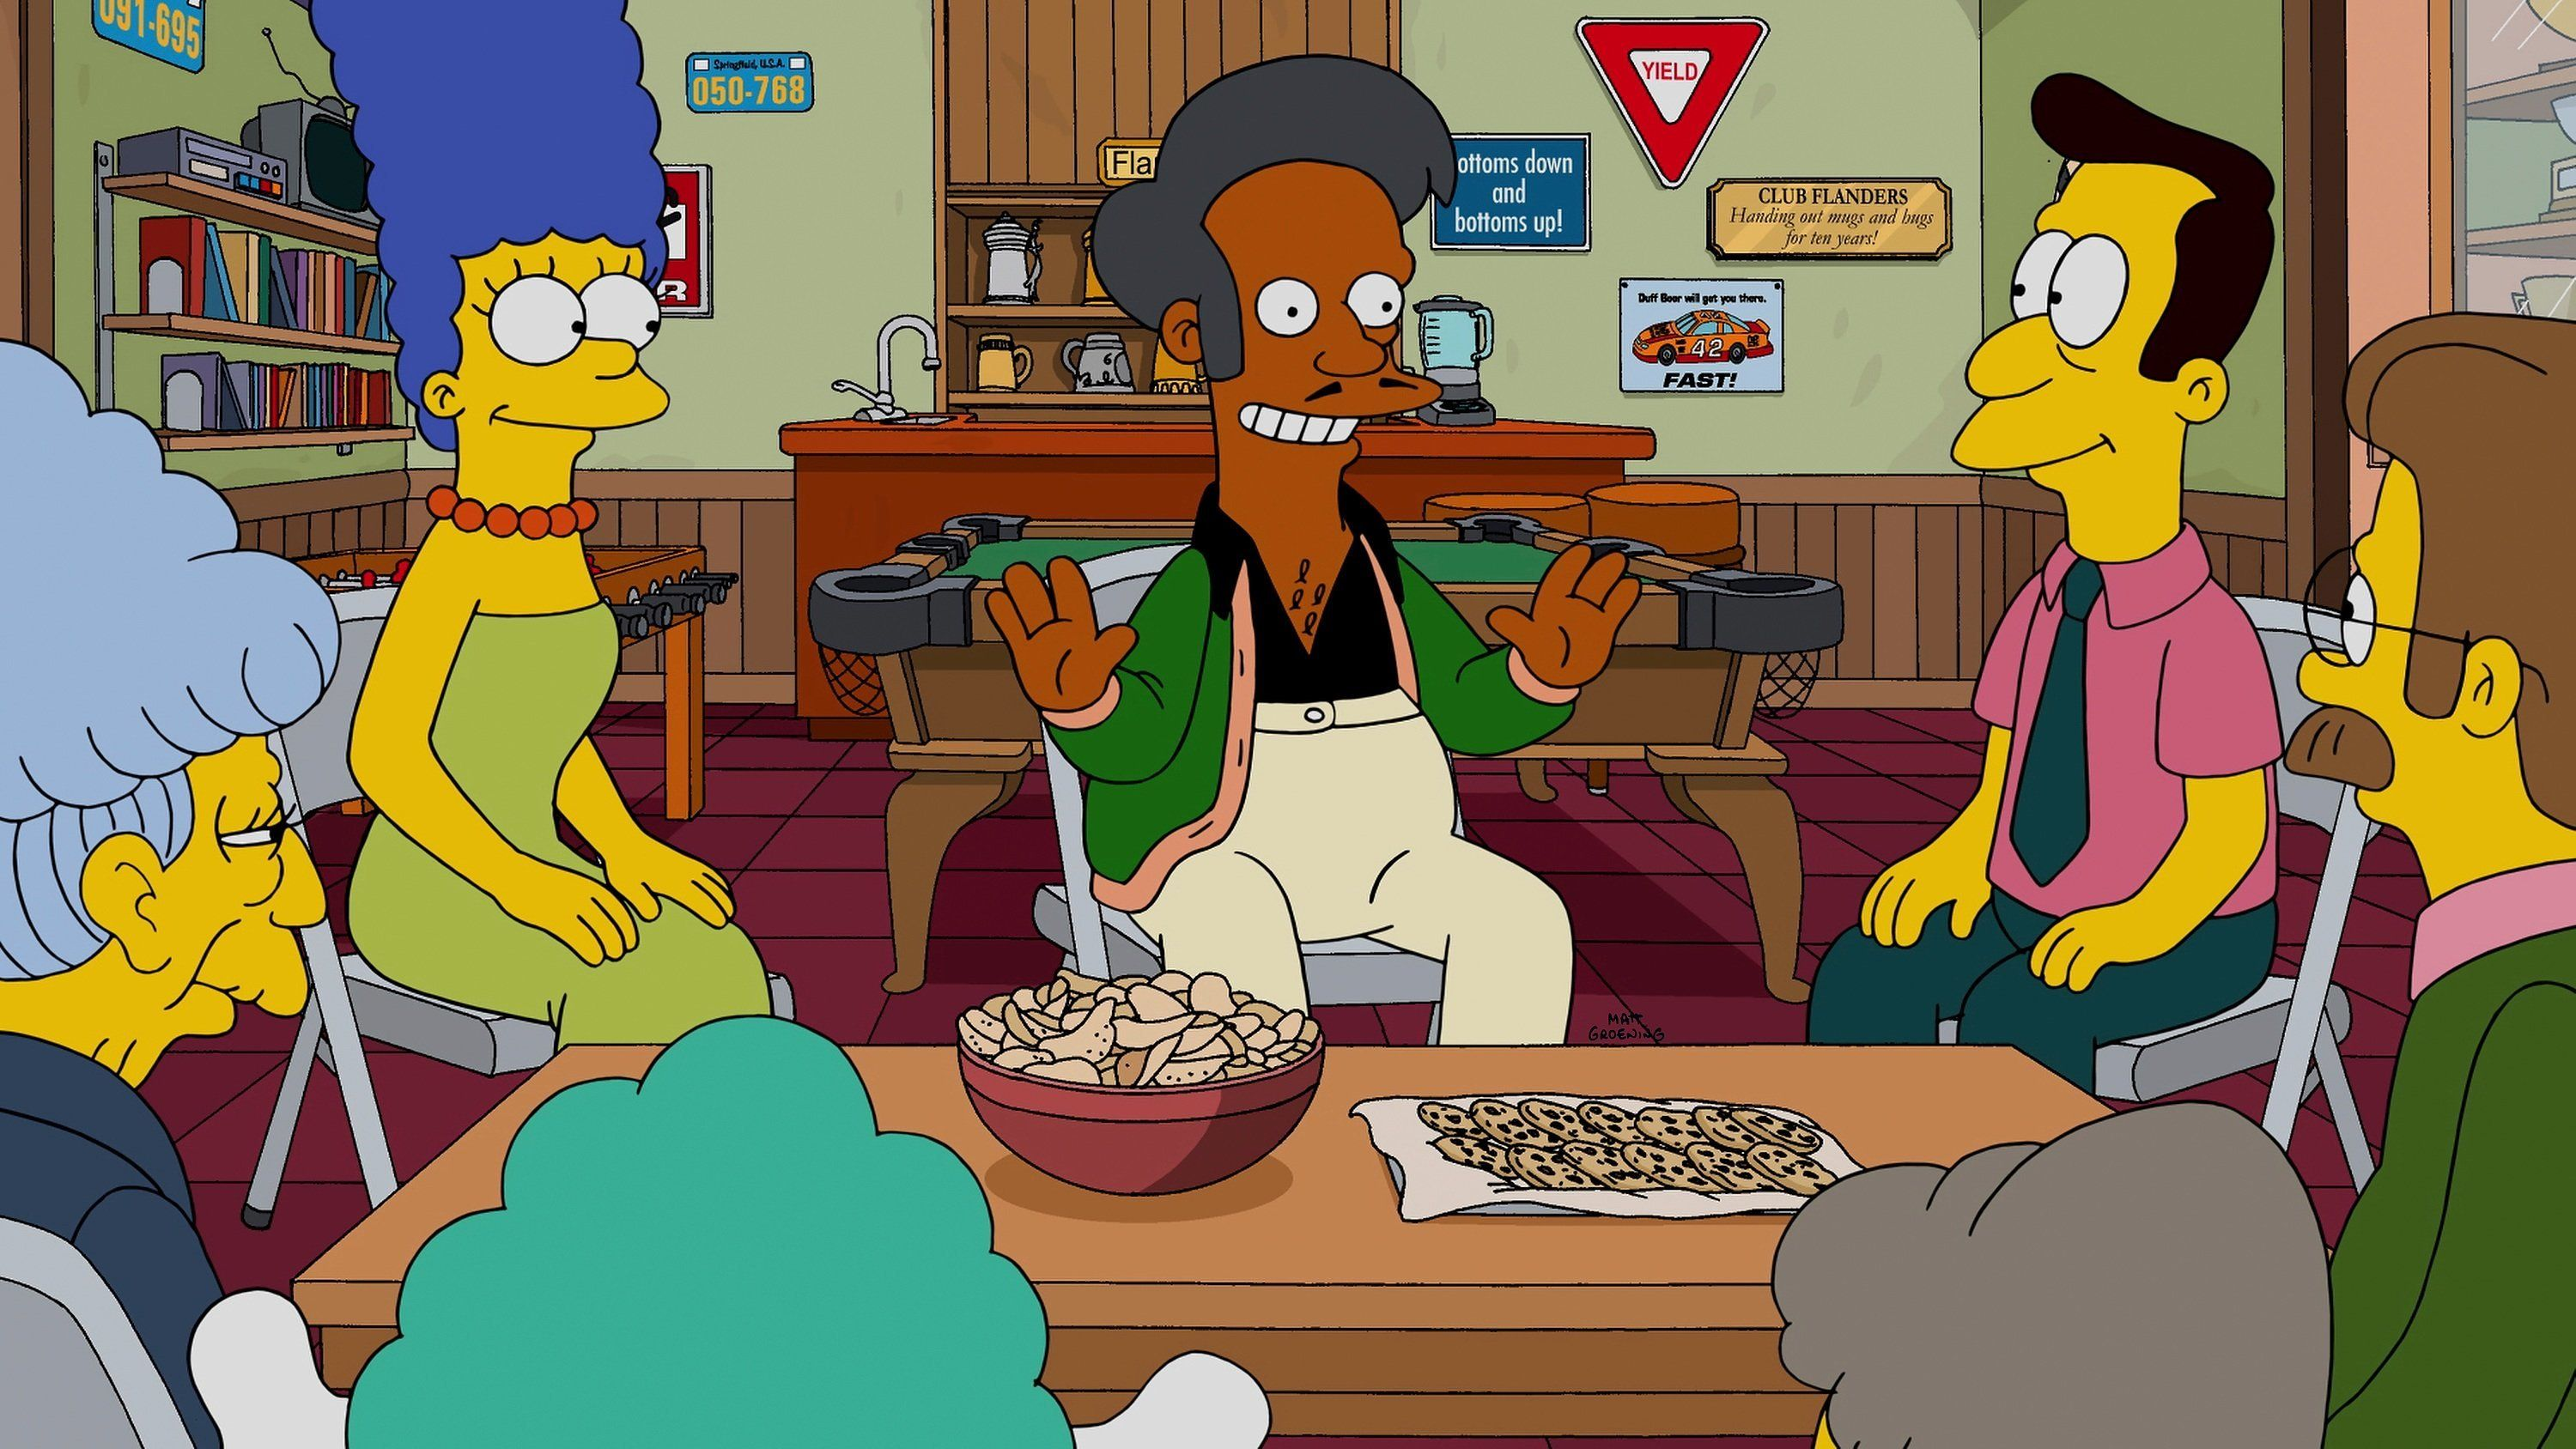 Apu, A Racist Caricature Of South Asians, Faces Reckoning In New